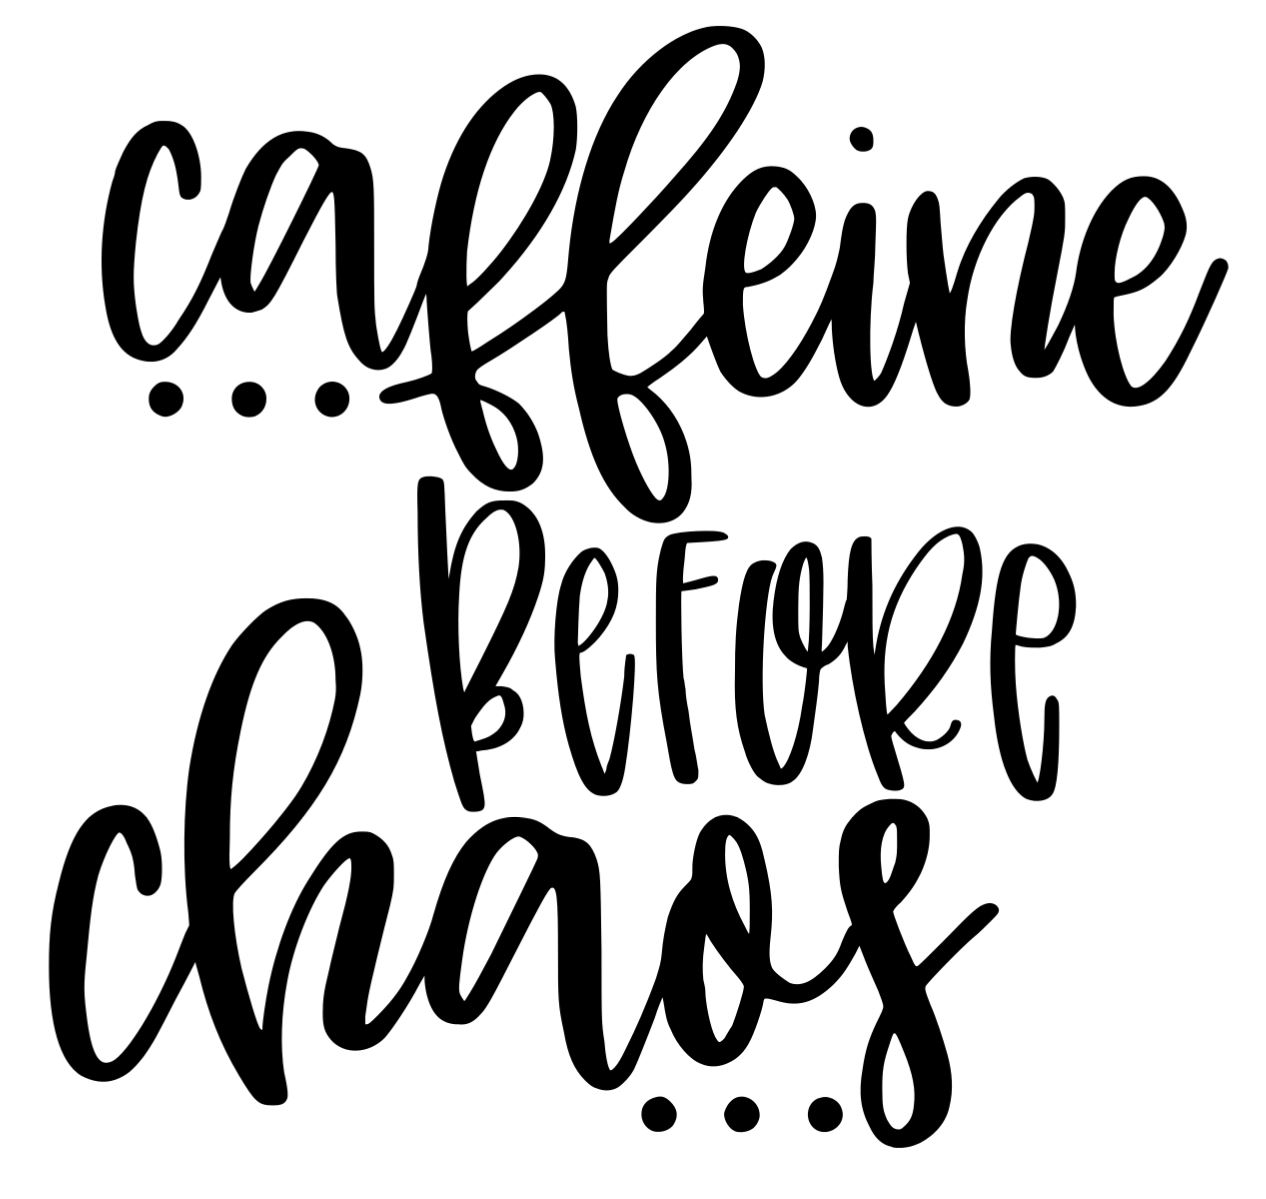 Caffine before Chaos - Copy - Copy